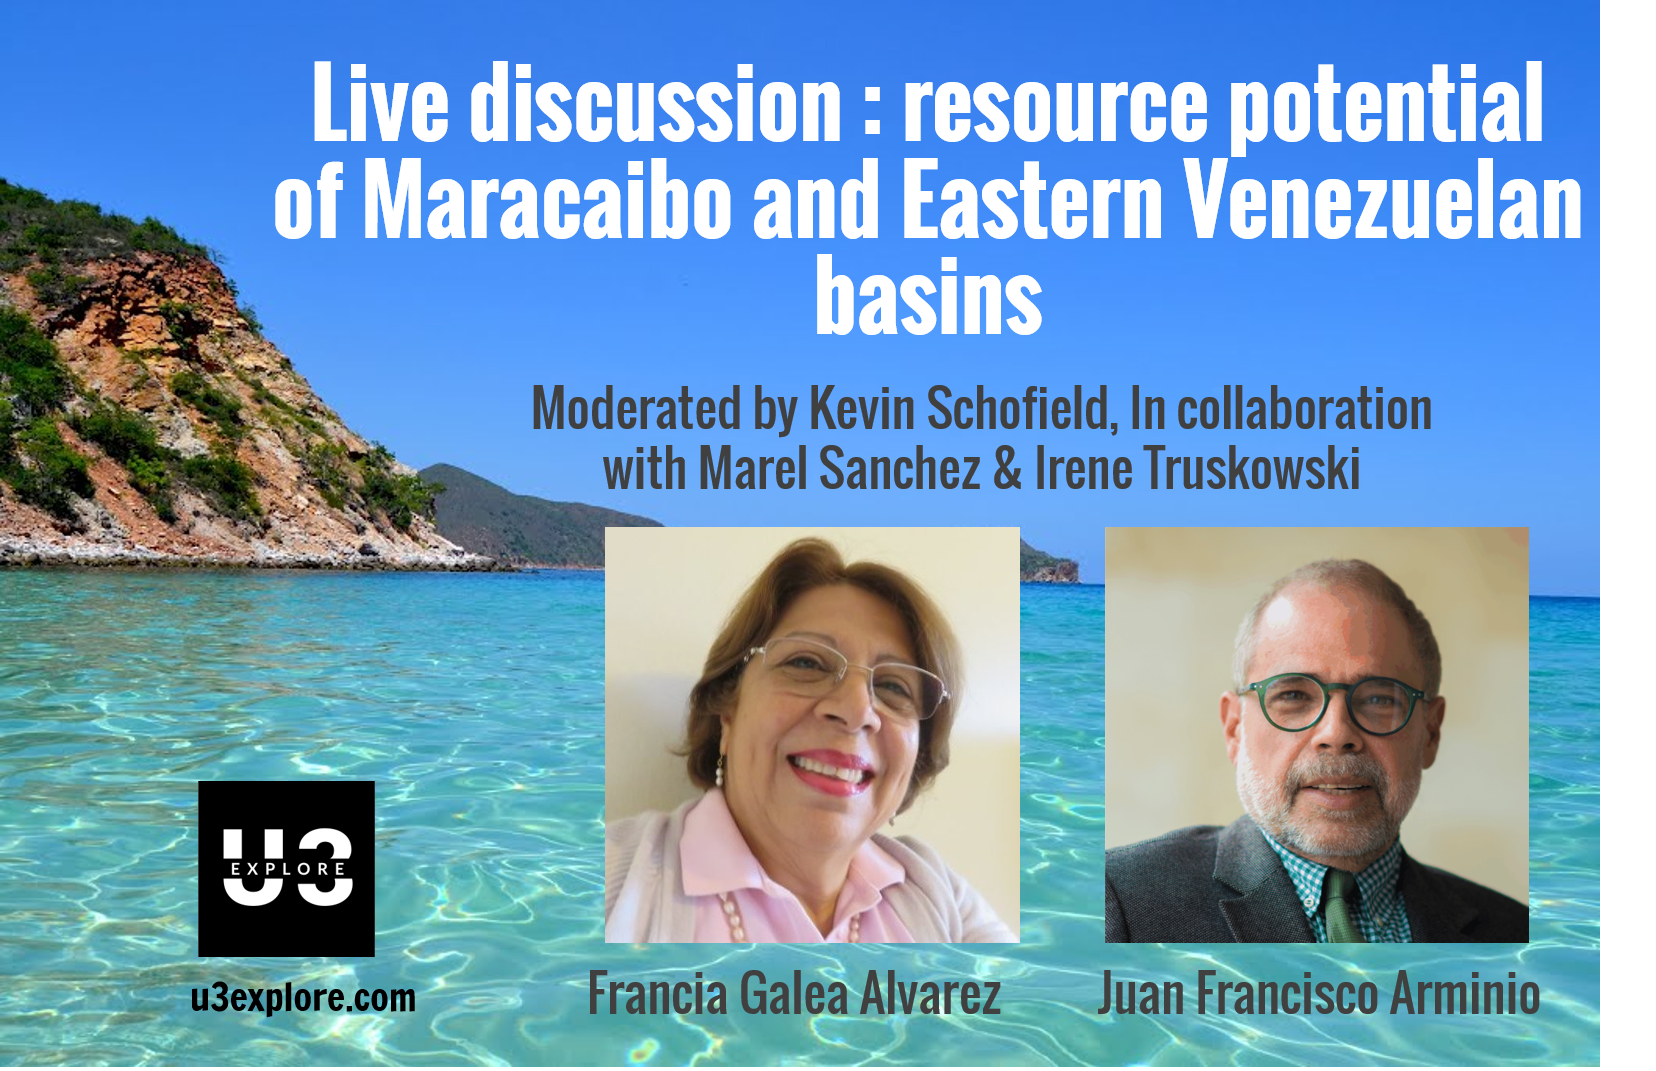 Virtual Live discussion : Calculating resource potential of Maracaibo and Eastern Venezuelan basins